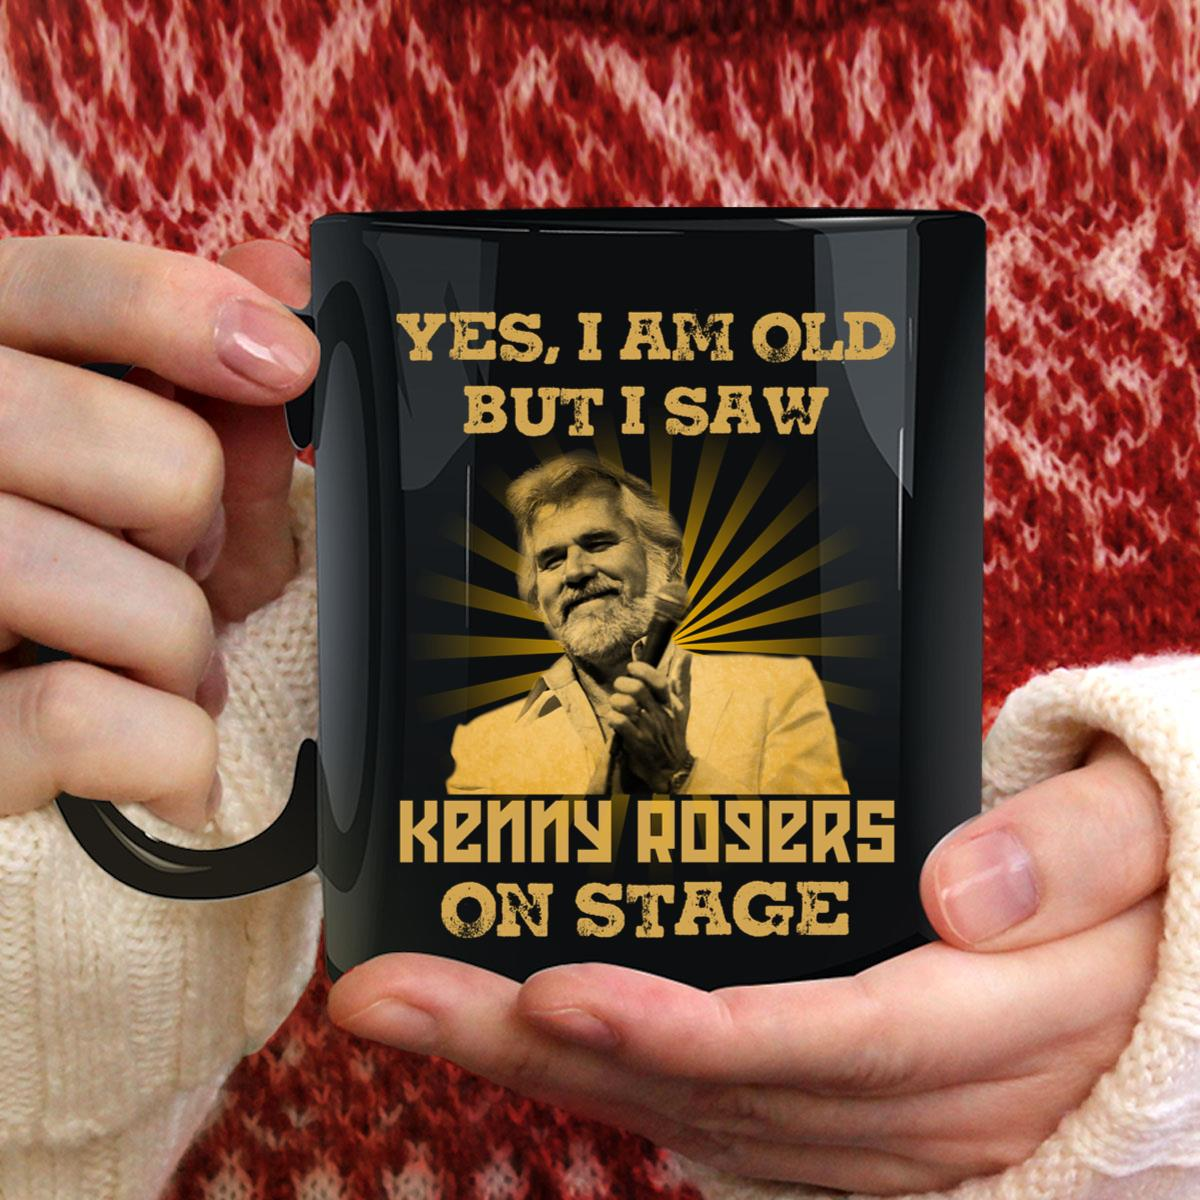 I Am Old But I Saw Kenny Rogers Mug